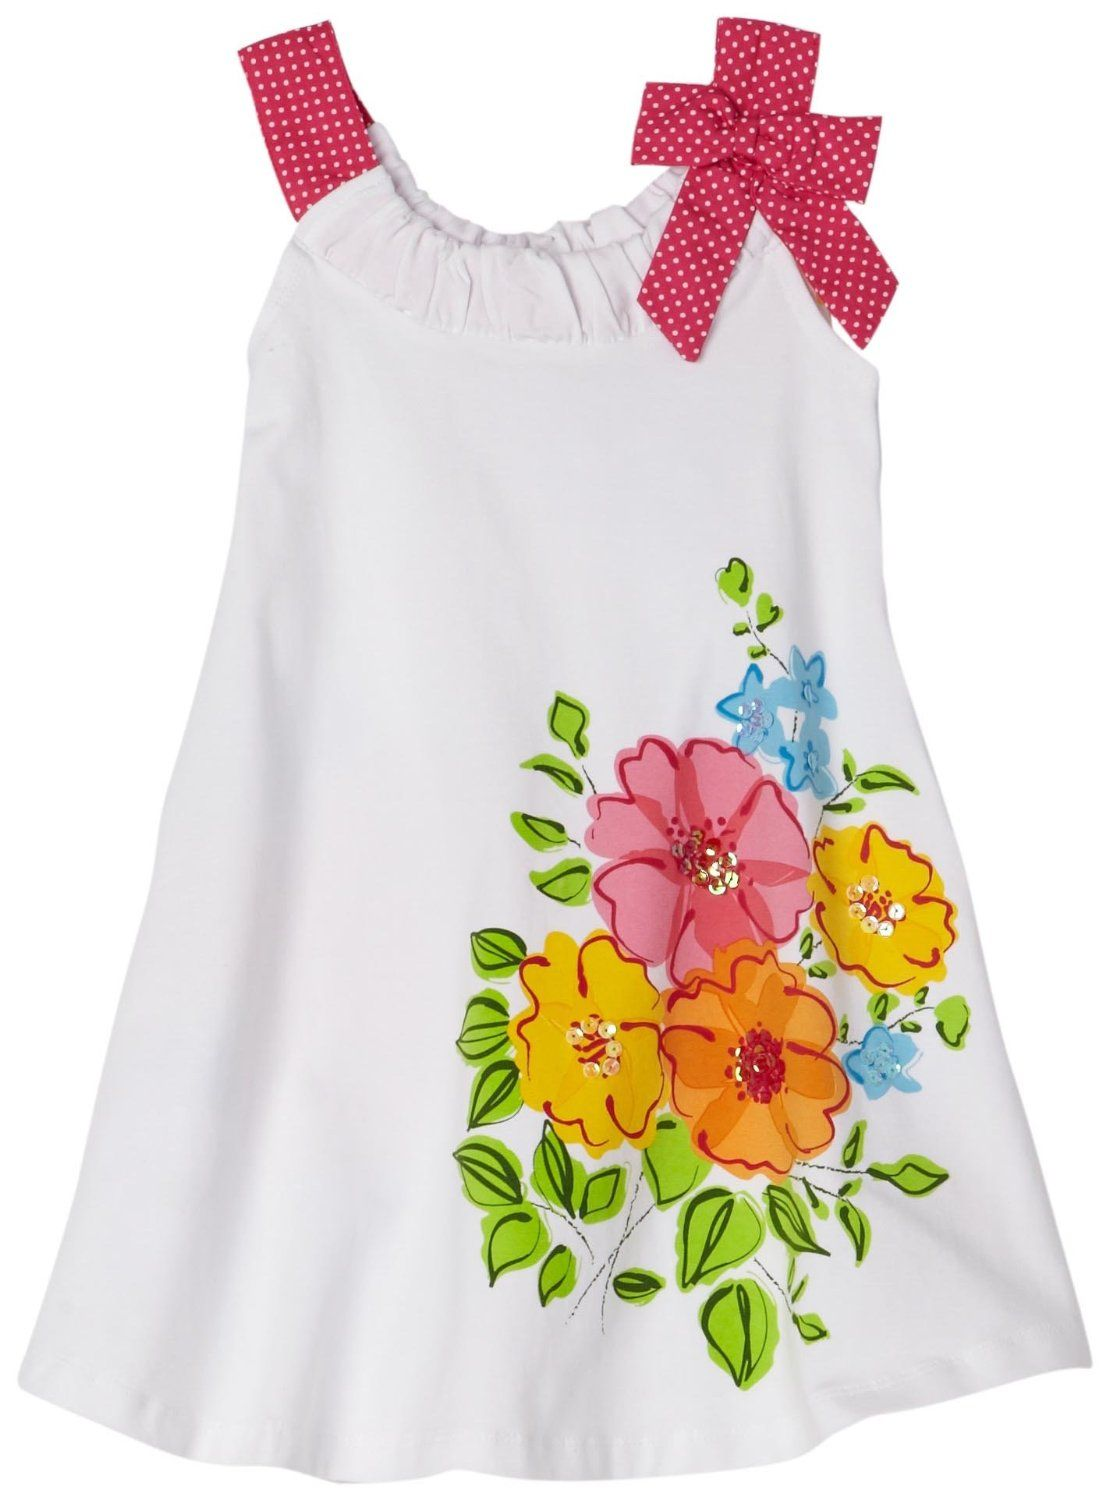 Cheap fashion girl dress, Buy Quality girls dress directly from China girl dress fashion Suppliers: HE Hello Enjoy Girl Dress Kids Spring Autumn Children's Girl Clothing Bow Print Long Sleeve Princess Dress for Girl Fashion Enjoy Free Shipping Worldwide! Limited Time Sale Easy Return/5().